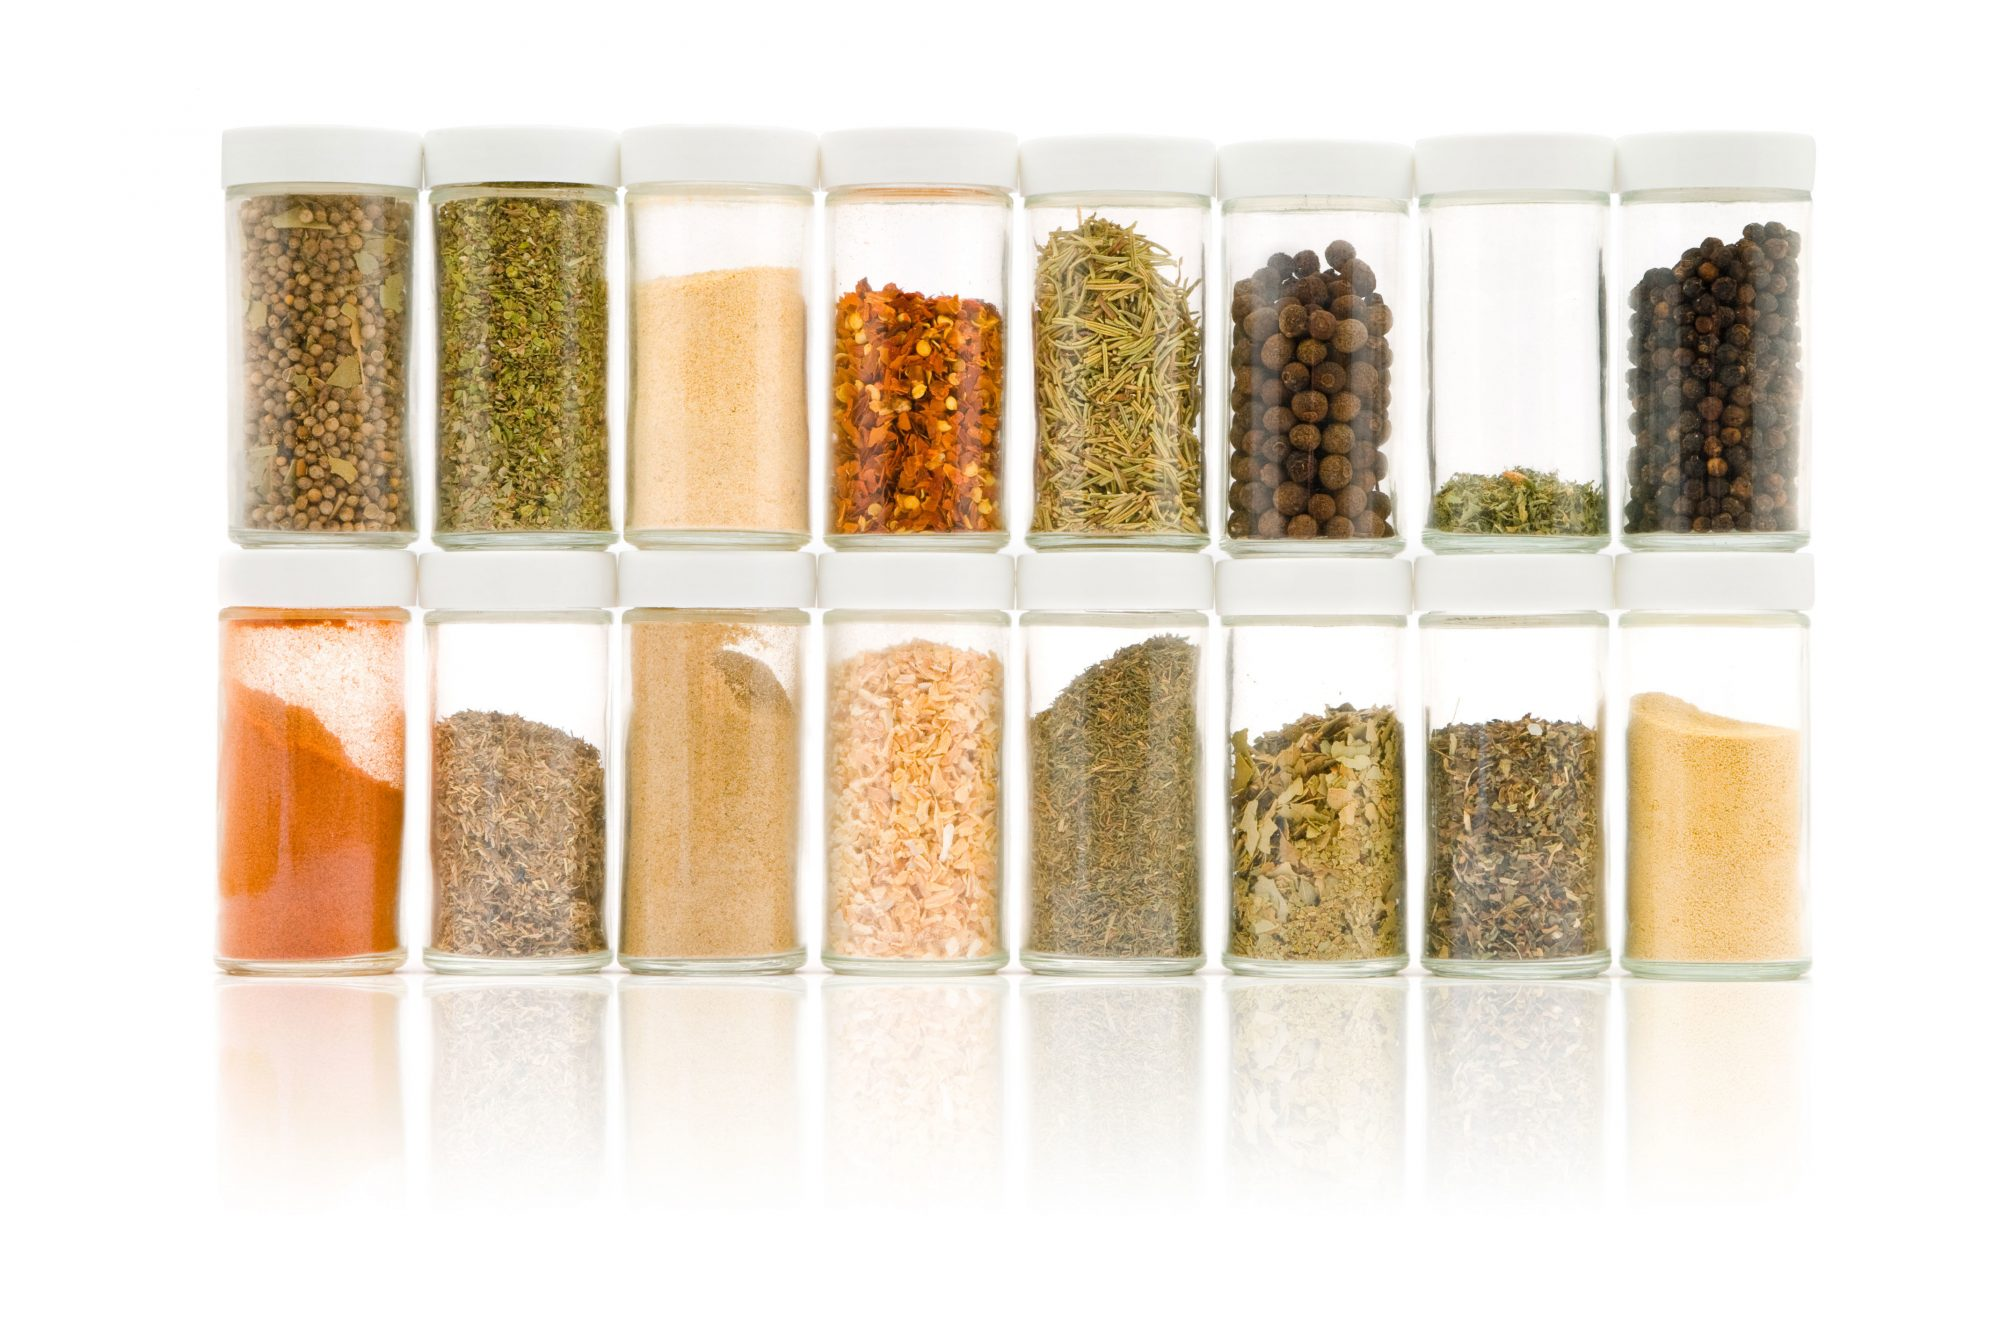 5 Reasons Why You Pay More for Spices